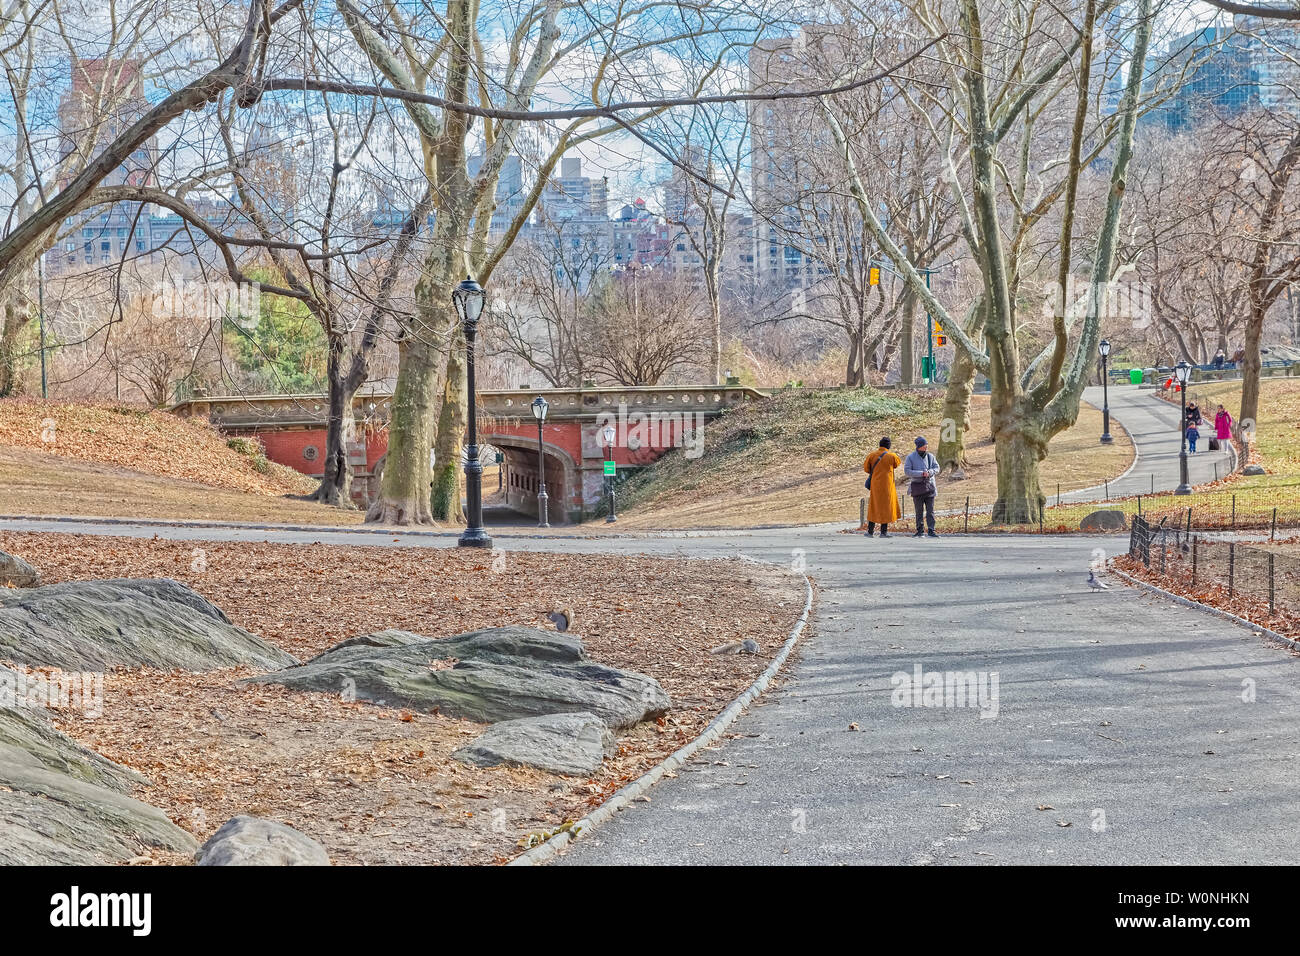 NEW YORK, USA - JANUARY 15, 2018: People walking by the red brick Driprock Arch bridge in Central Park winter season. - Stock Image